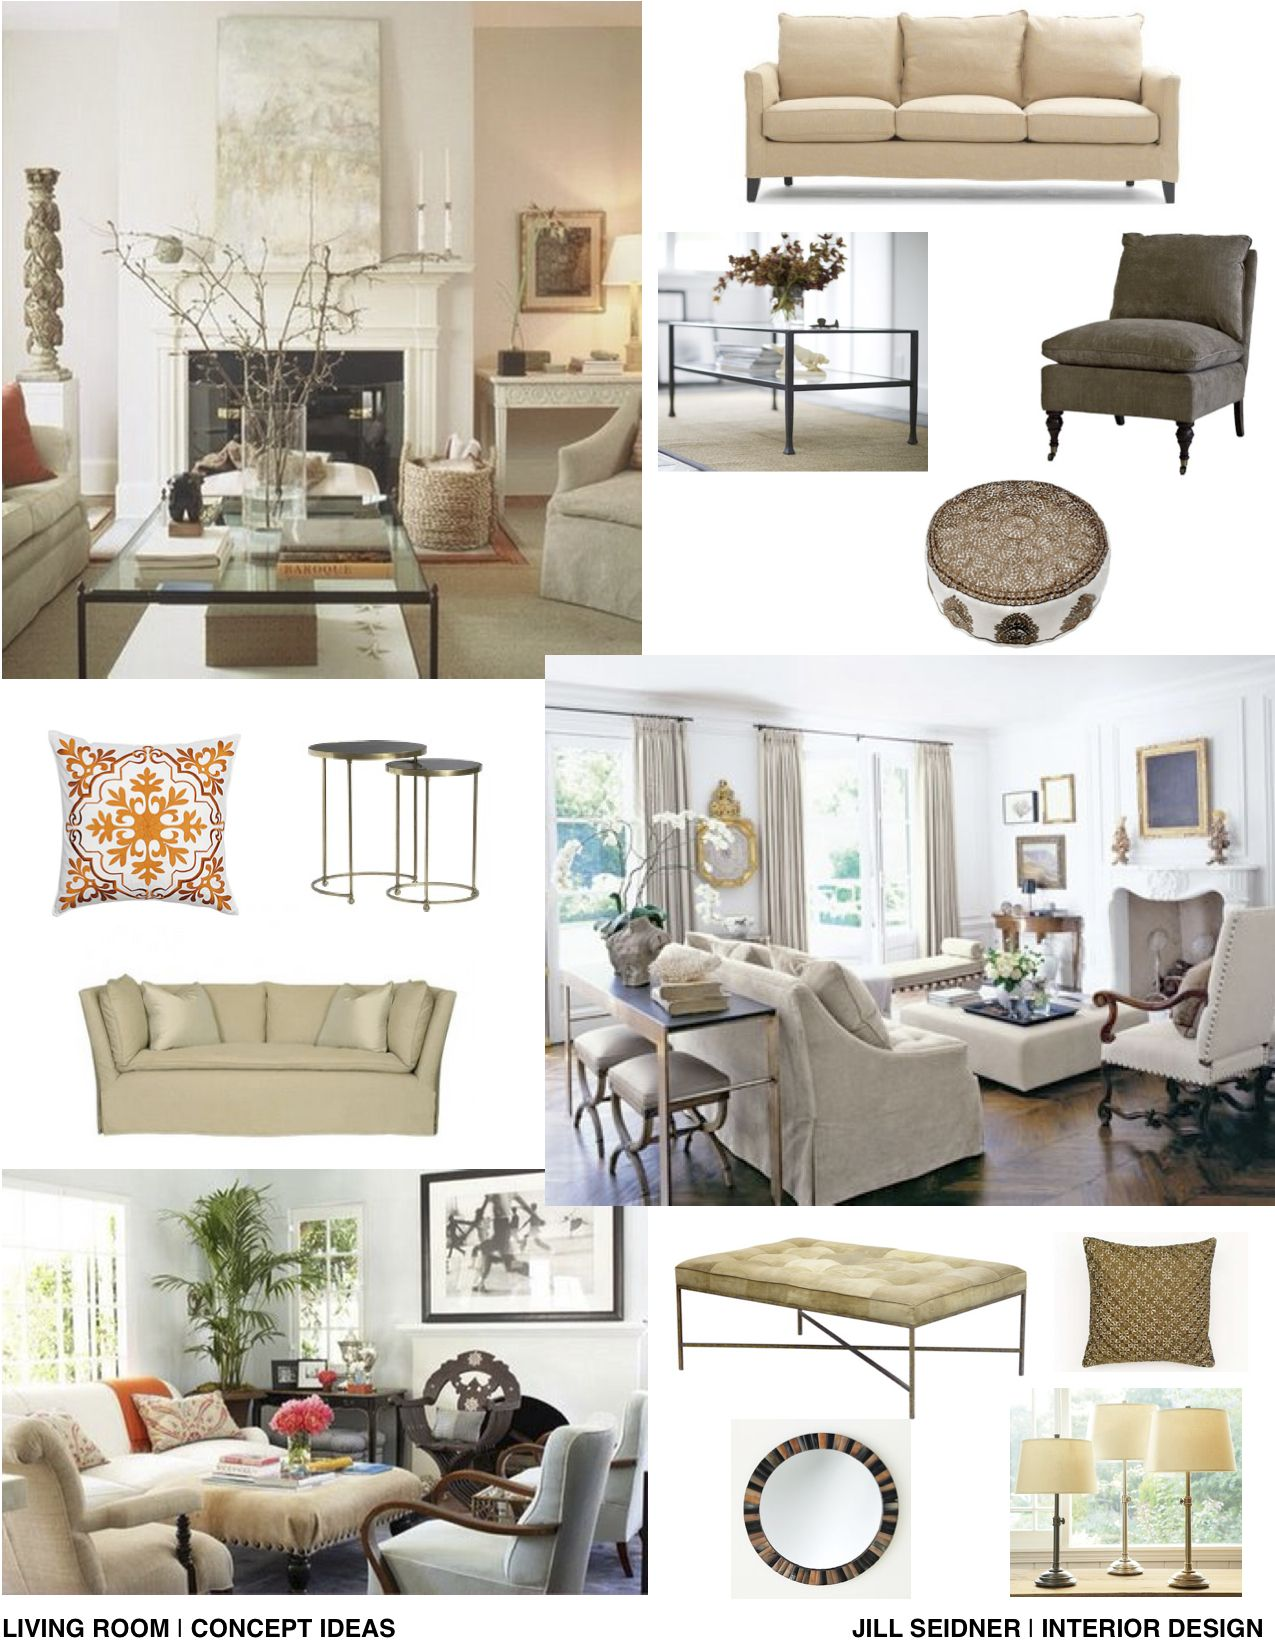 Help Designing A Room: Concept Board For Living Room Project.